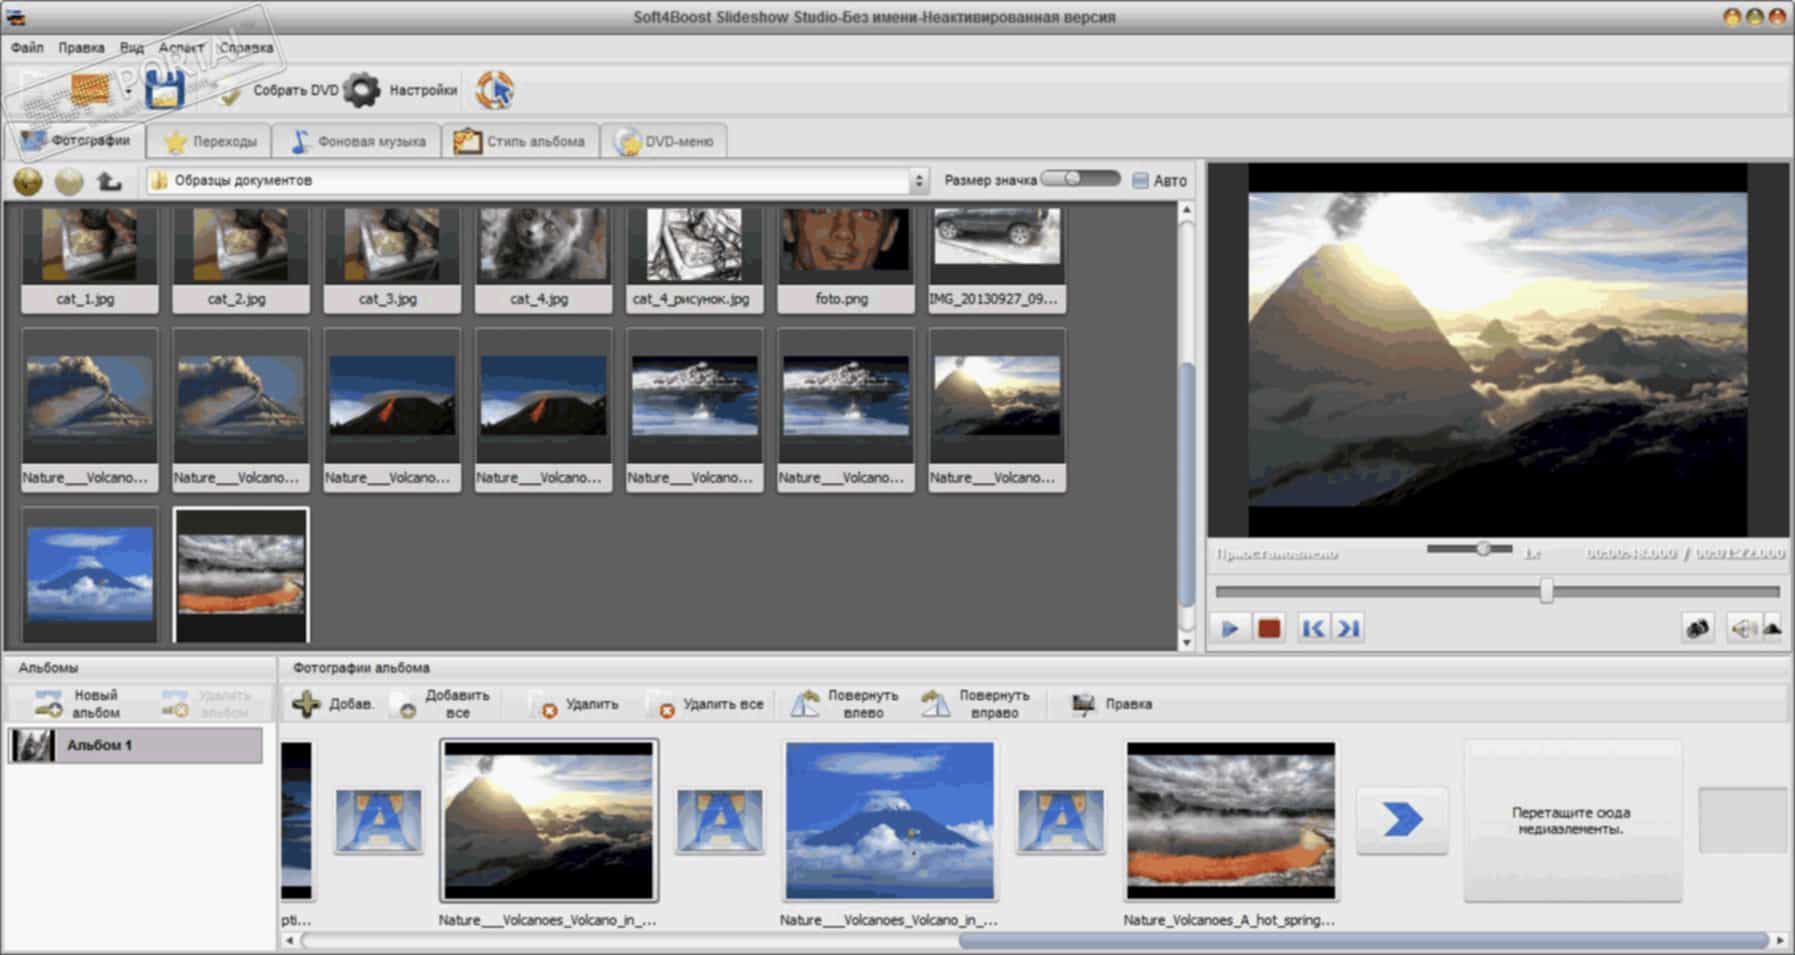 Soft4Boost Slideshow Studio 4.9.1.955